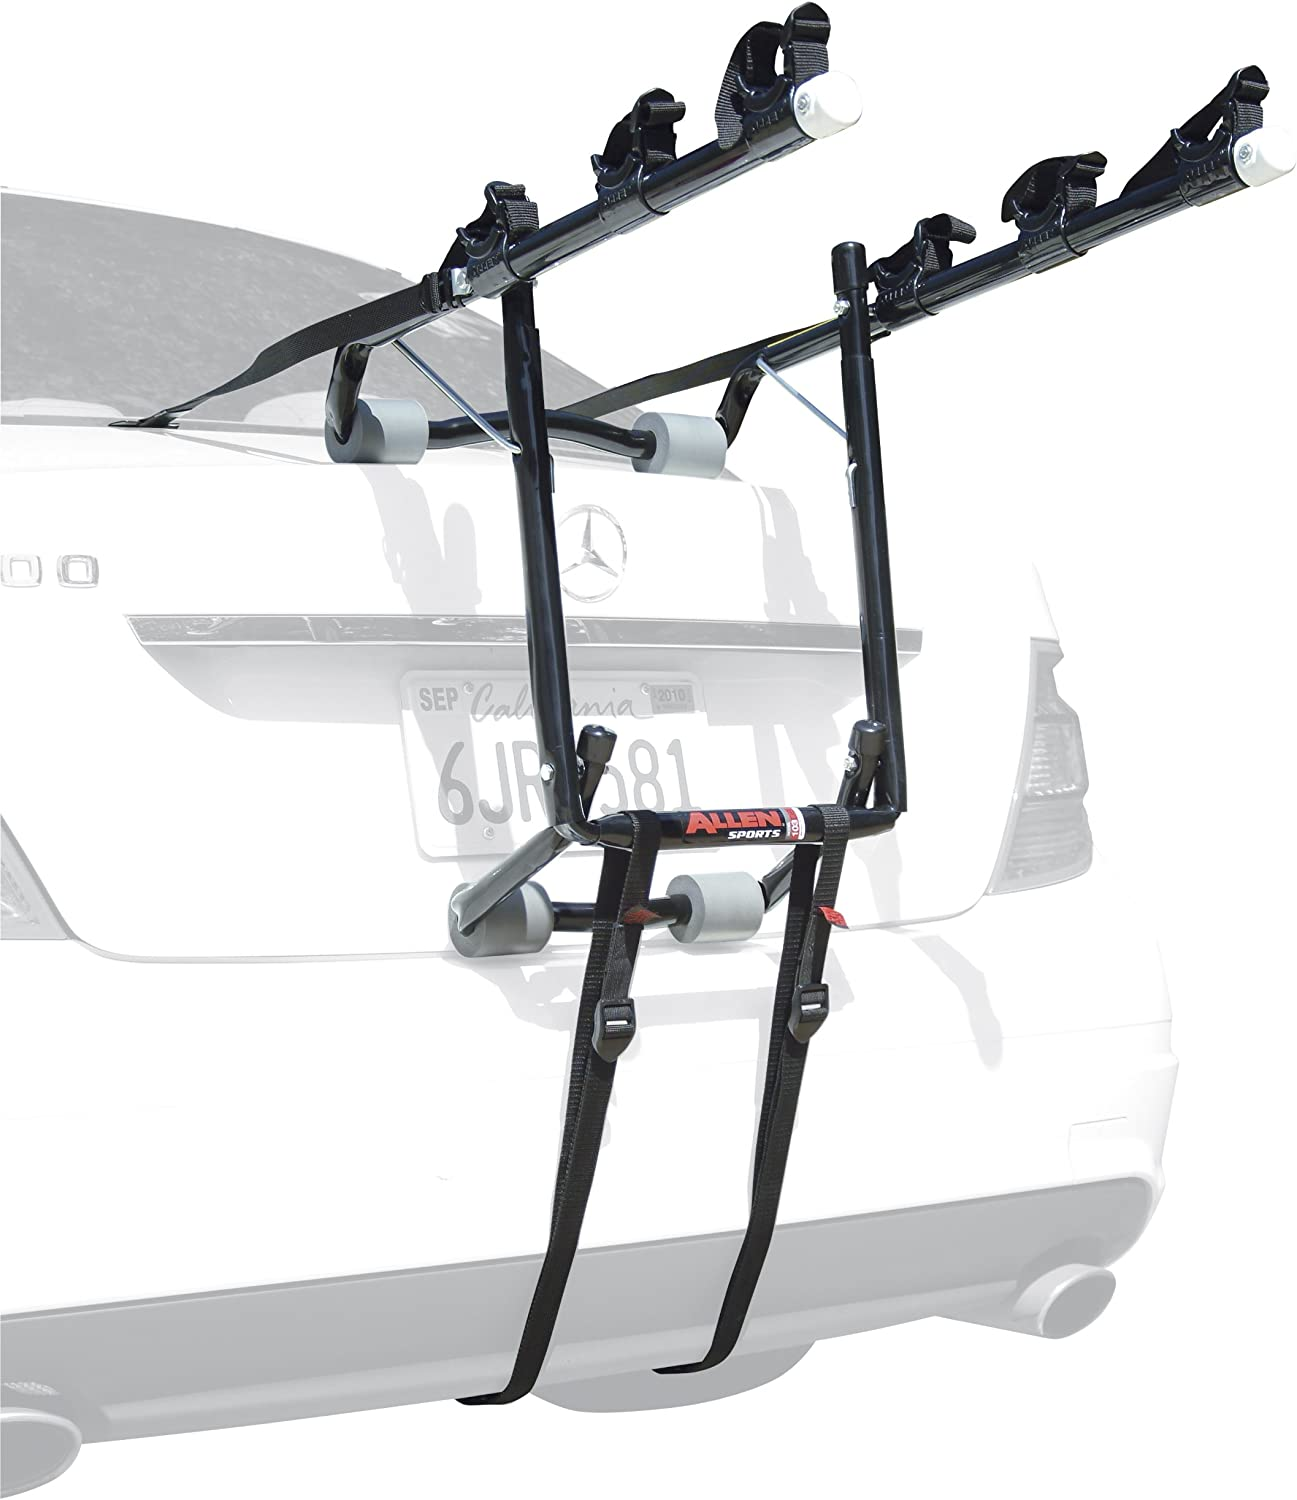 3. Allen Sports Deluxe Trunk Mounted 3-Bike Rack